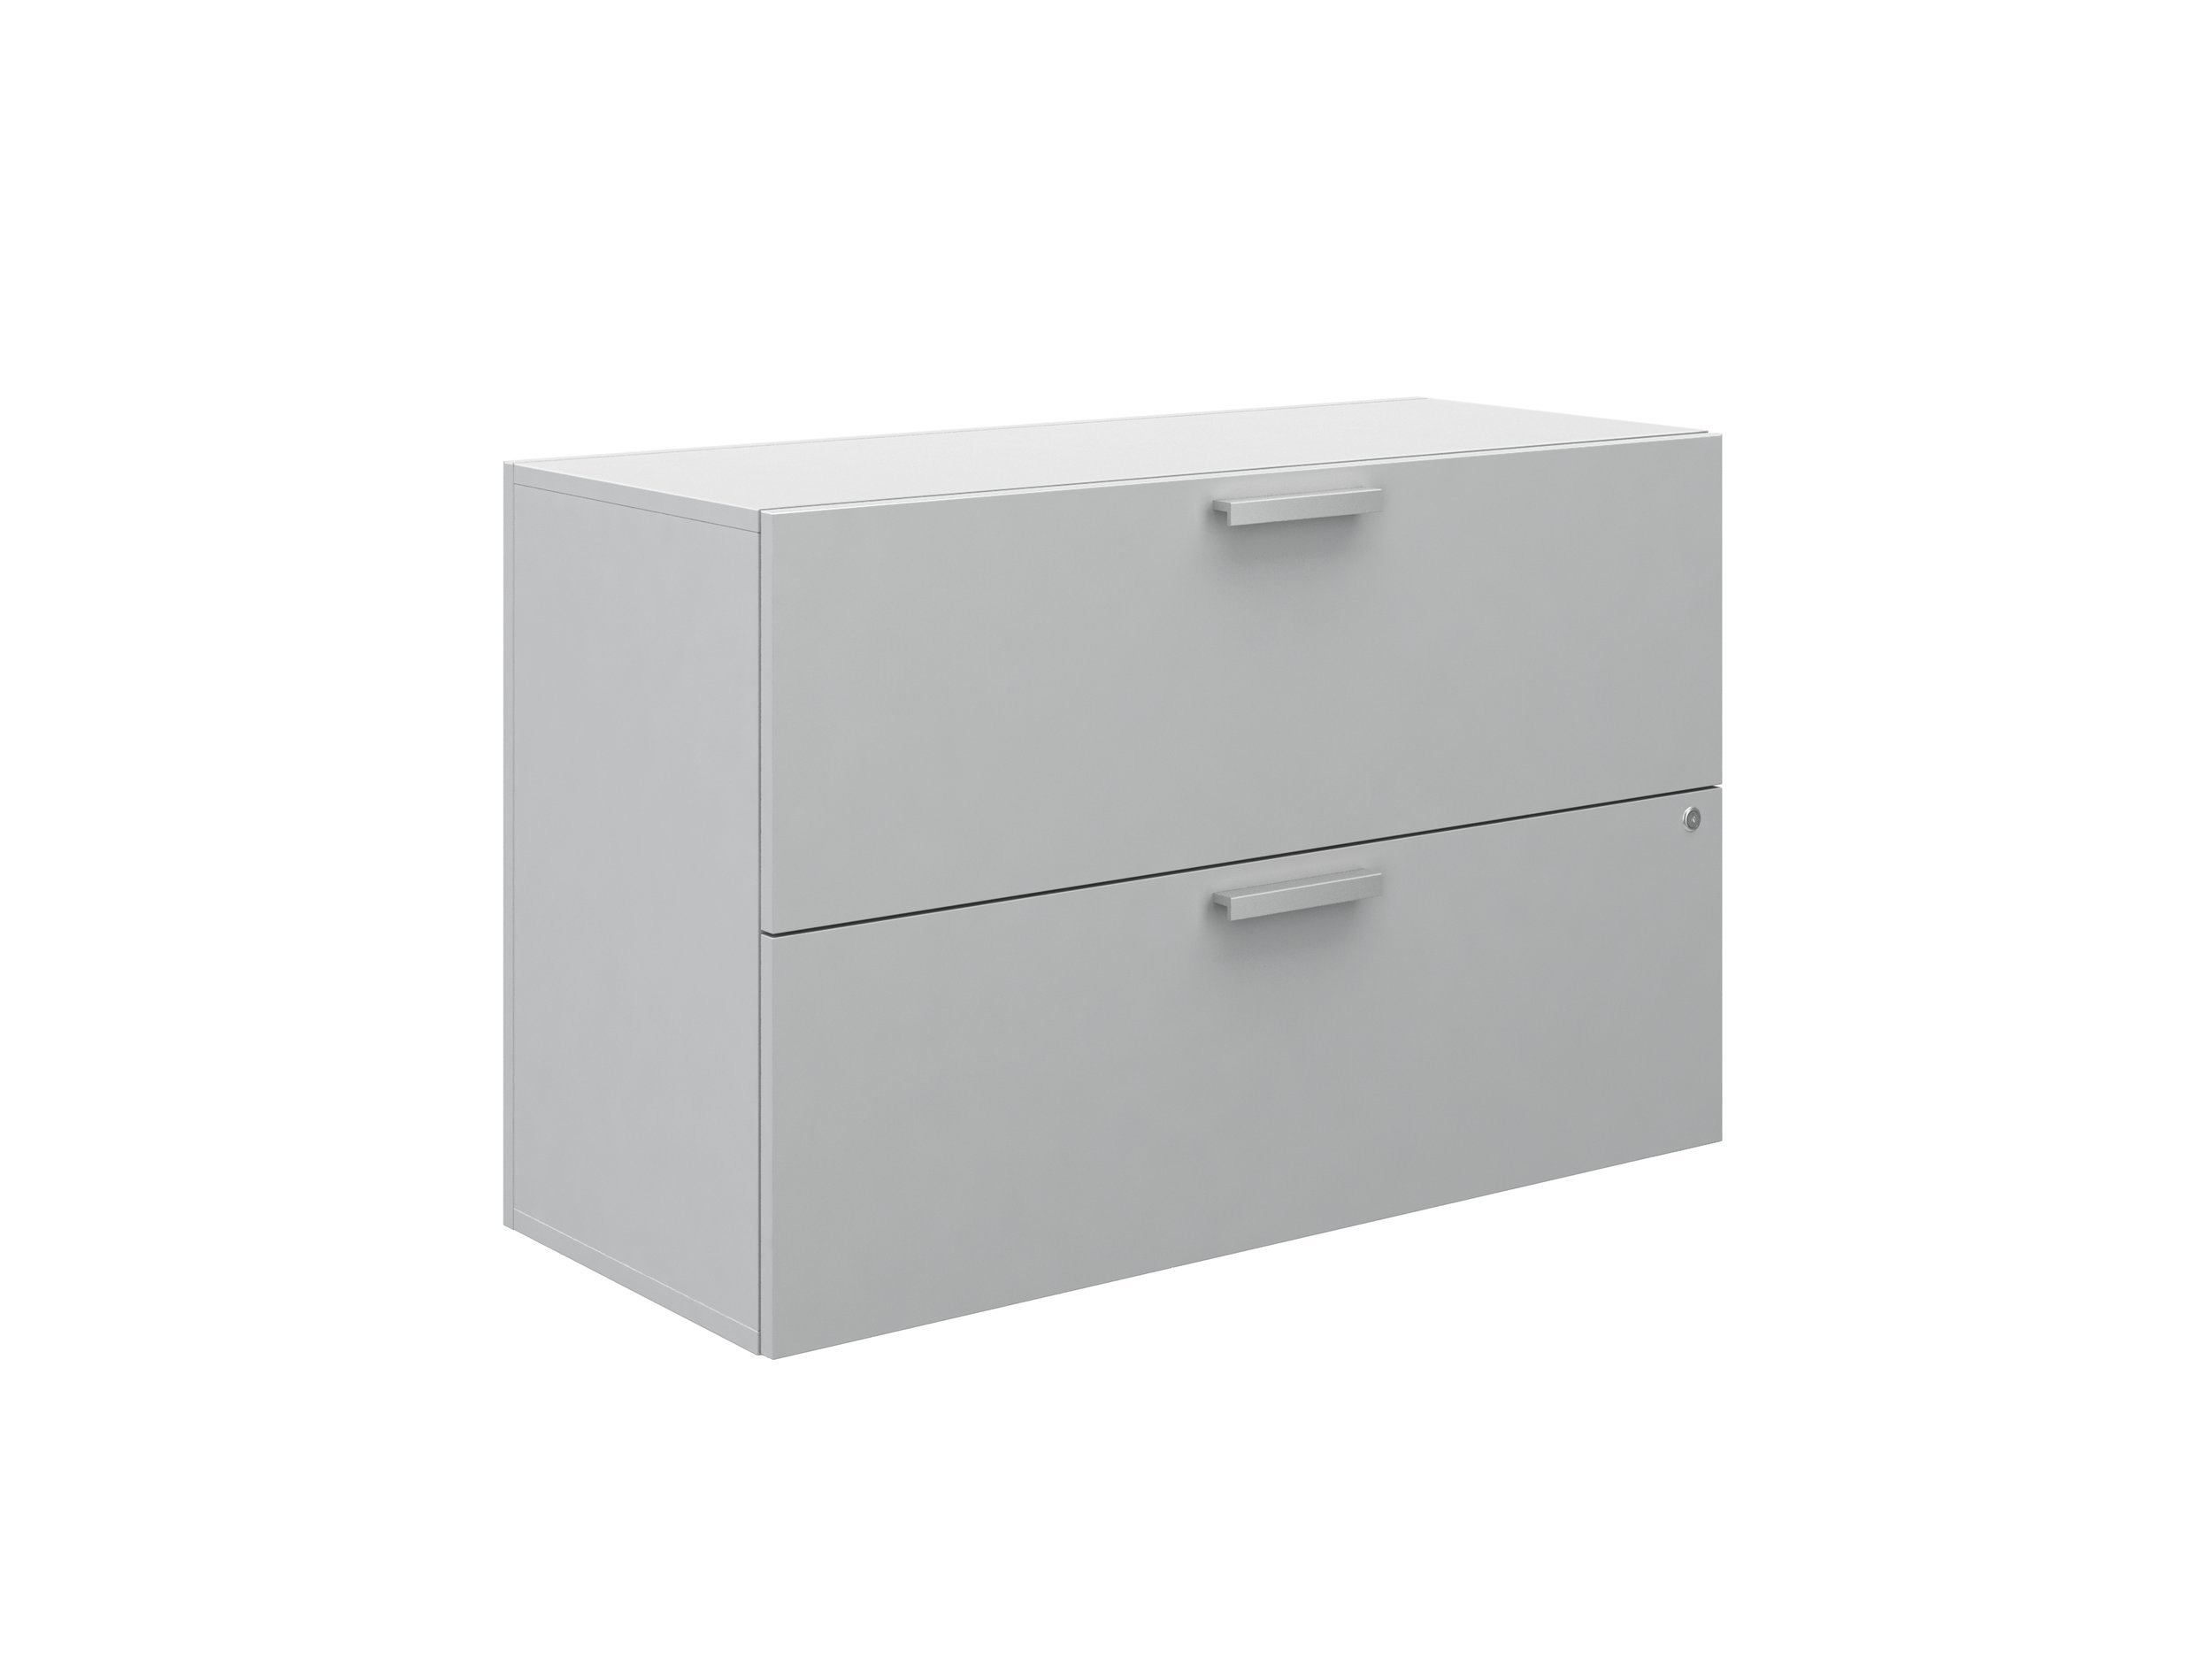 AIS Calibrate 42 inch-wide Lateral File